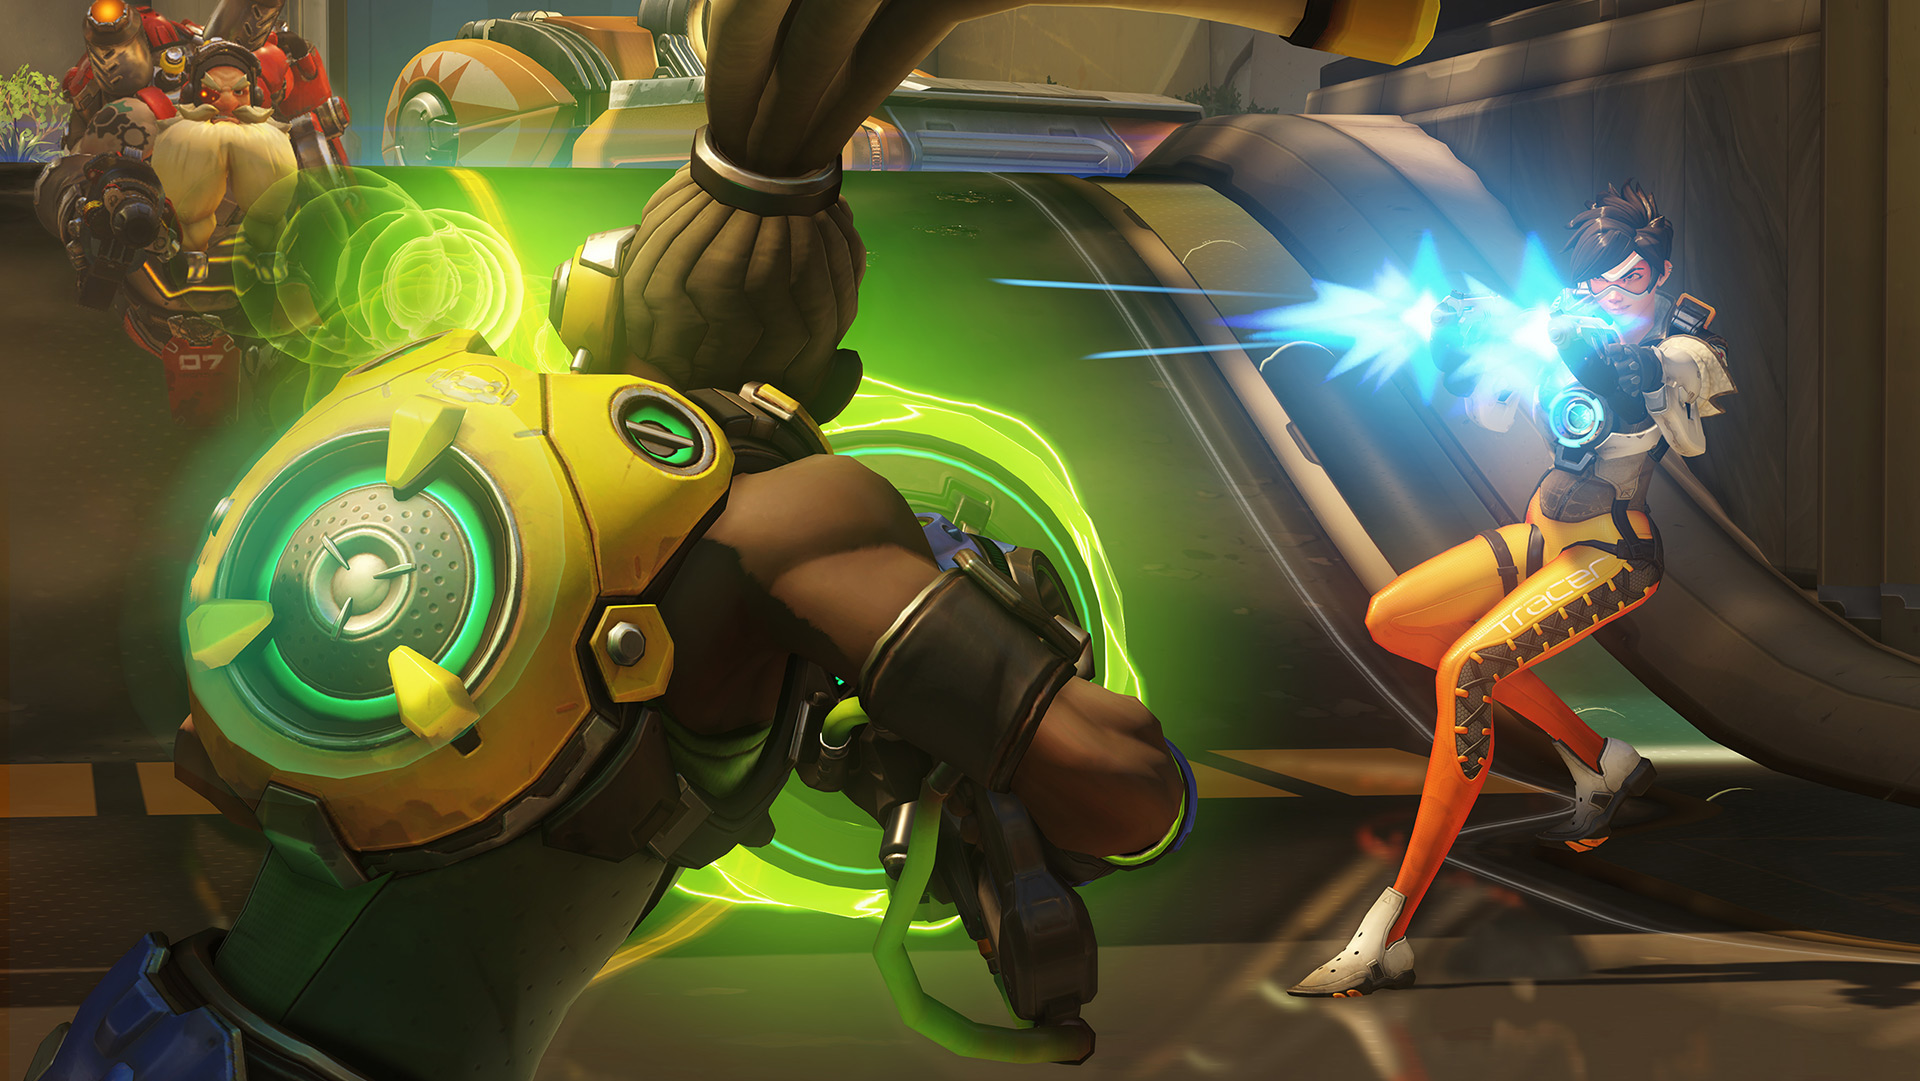 Overwatch Workshop creation adds Lucio Ball to Volleyball mode